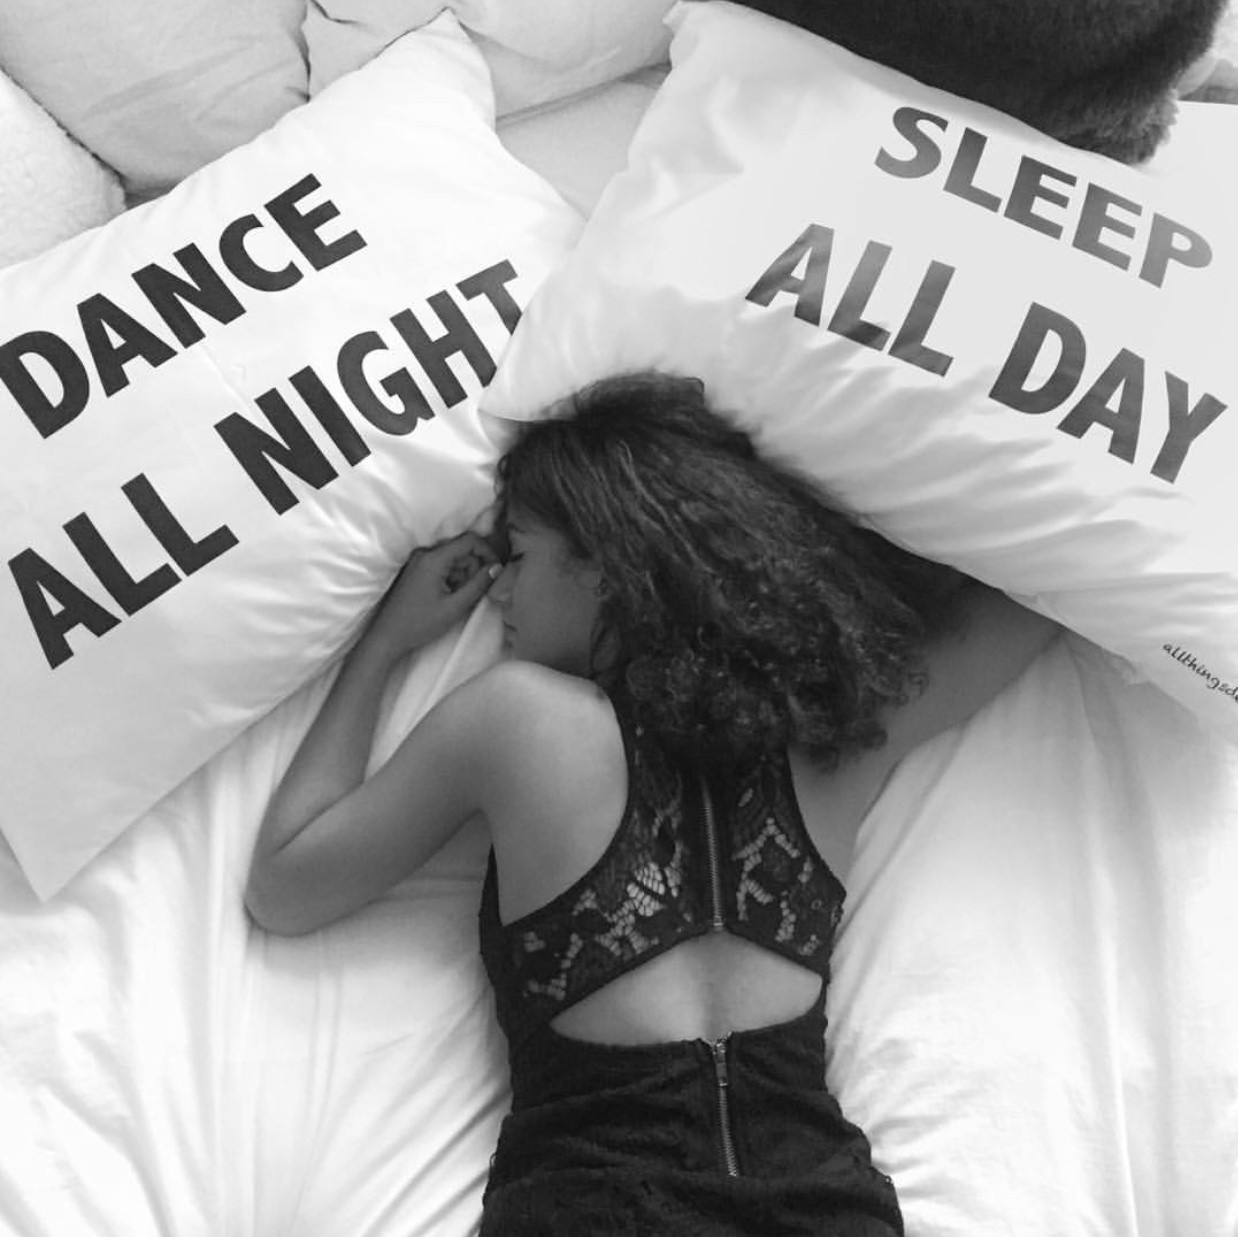 Sleep All Day Dance All Night Bedding